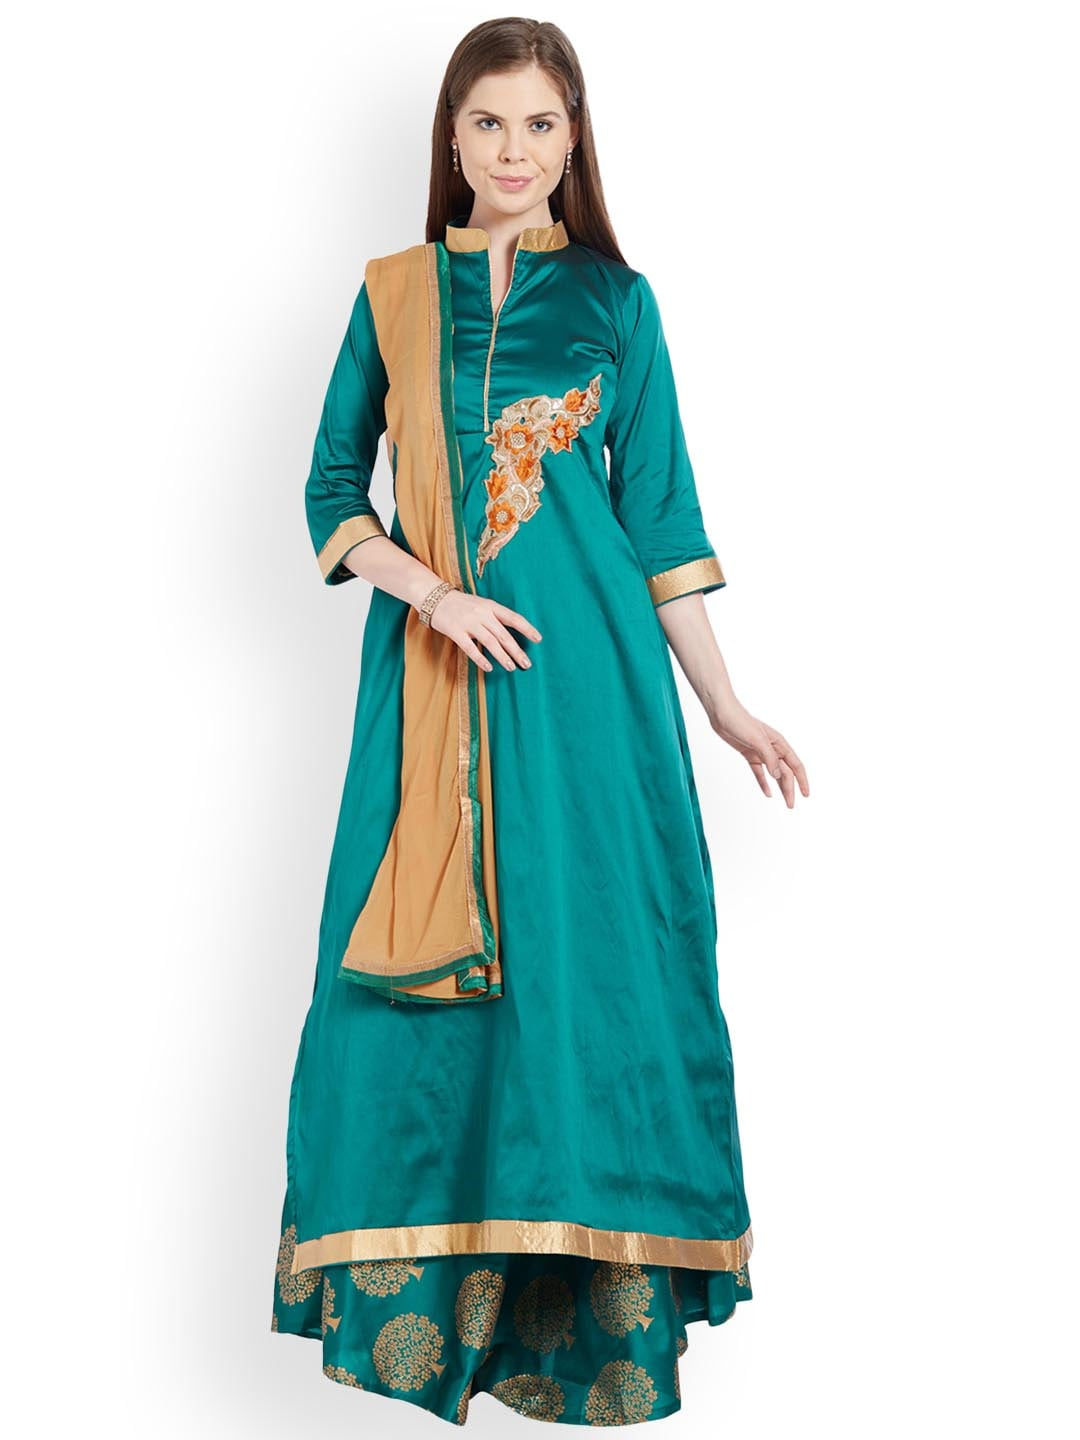 Viva N Diva Green & Beige Embroidered Ready to Wear Lehenga & Semi-Stitched Blouse with Dupatta image